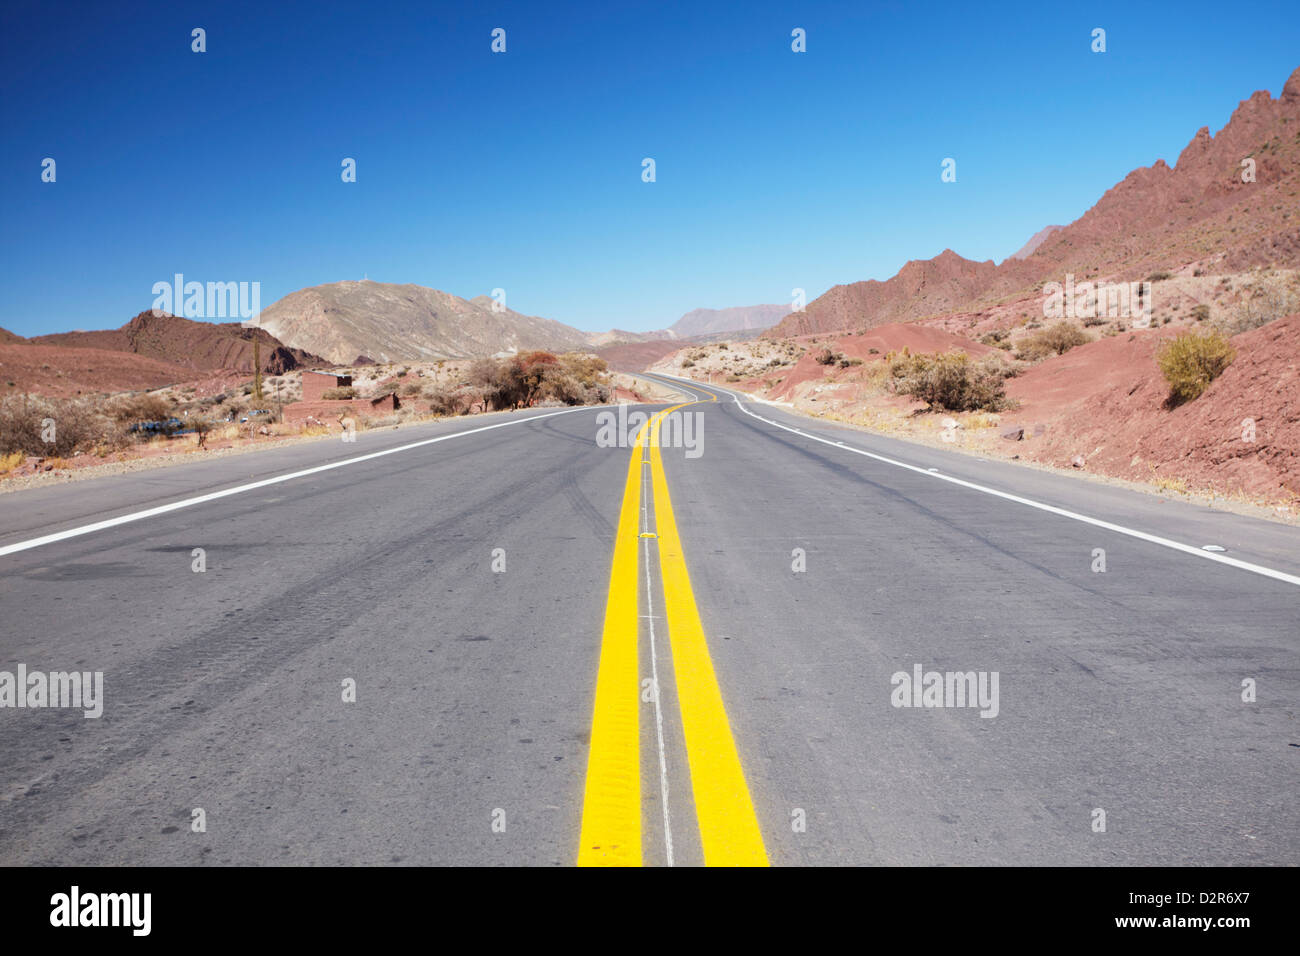 Road in Altiplano, Potosi Department, Bolivia, South America - Stock Image